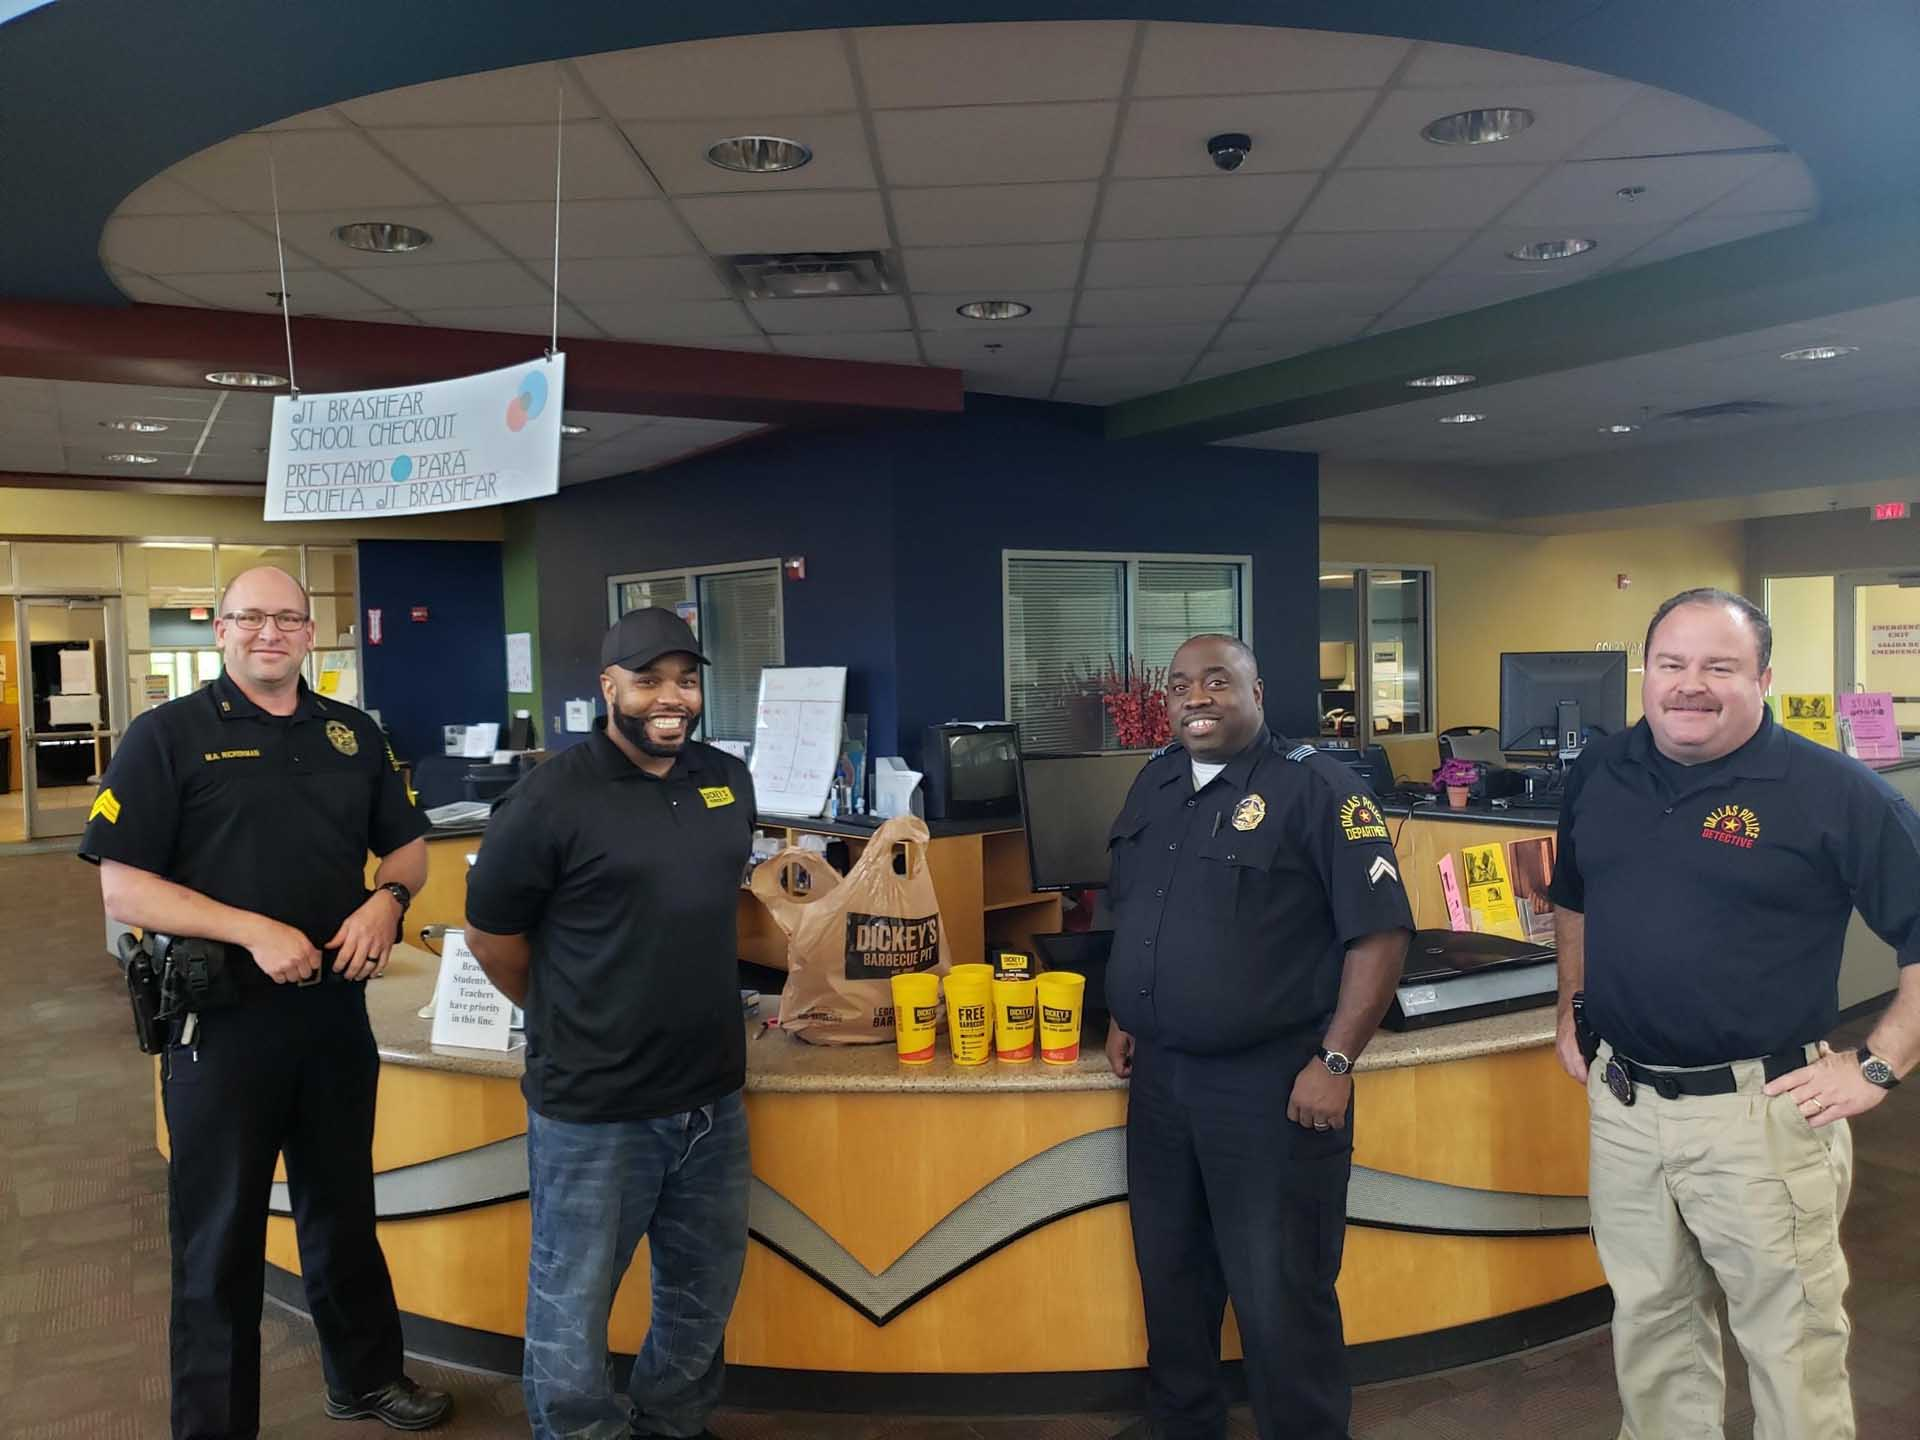 Dickey's Barbecue Pit: Supporting First Responders Stationed at Dallas Public Library